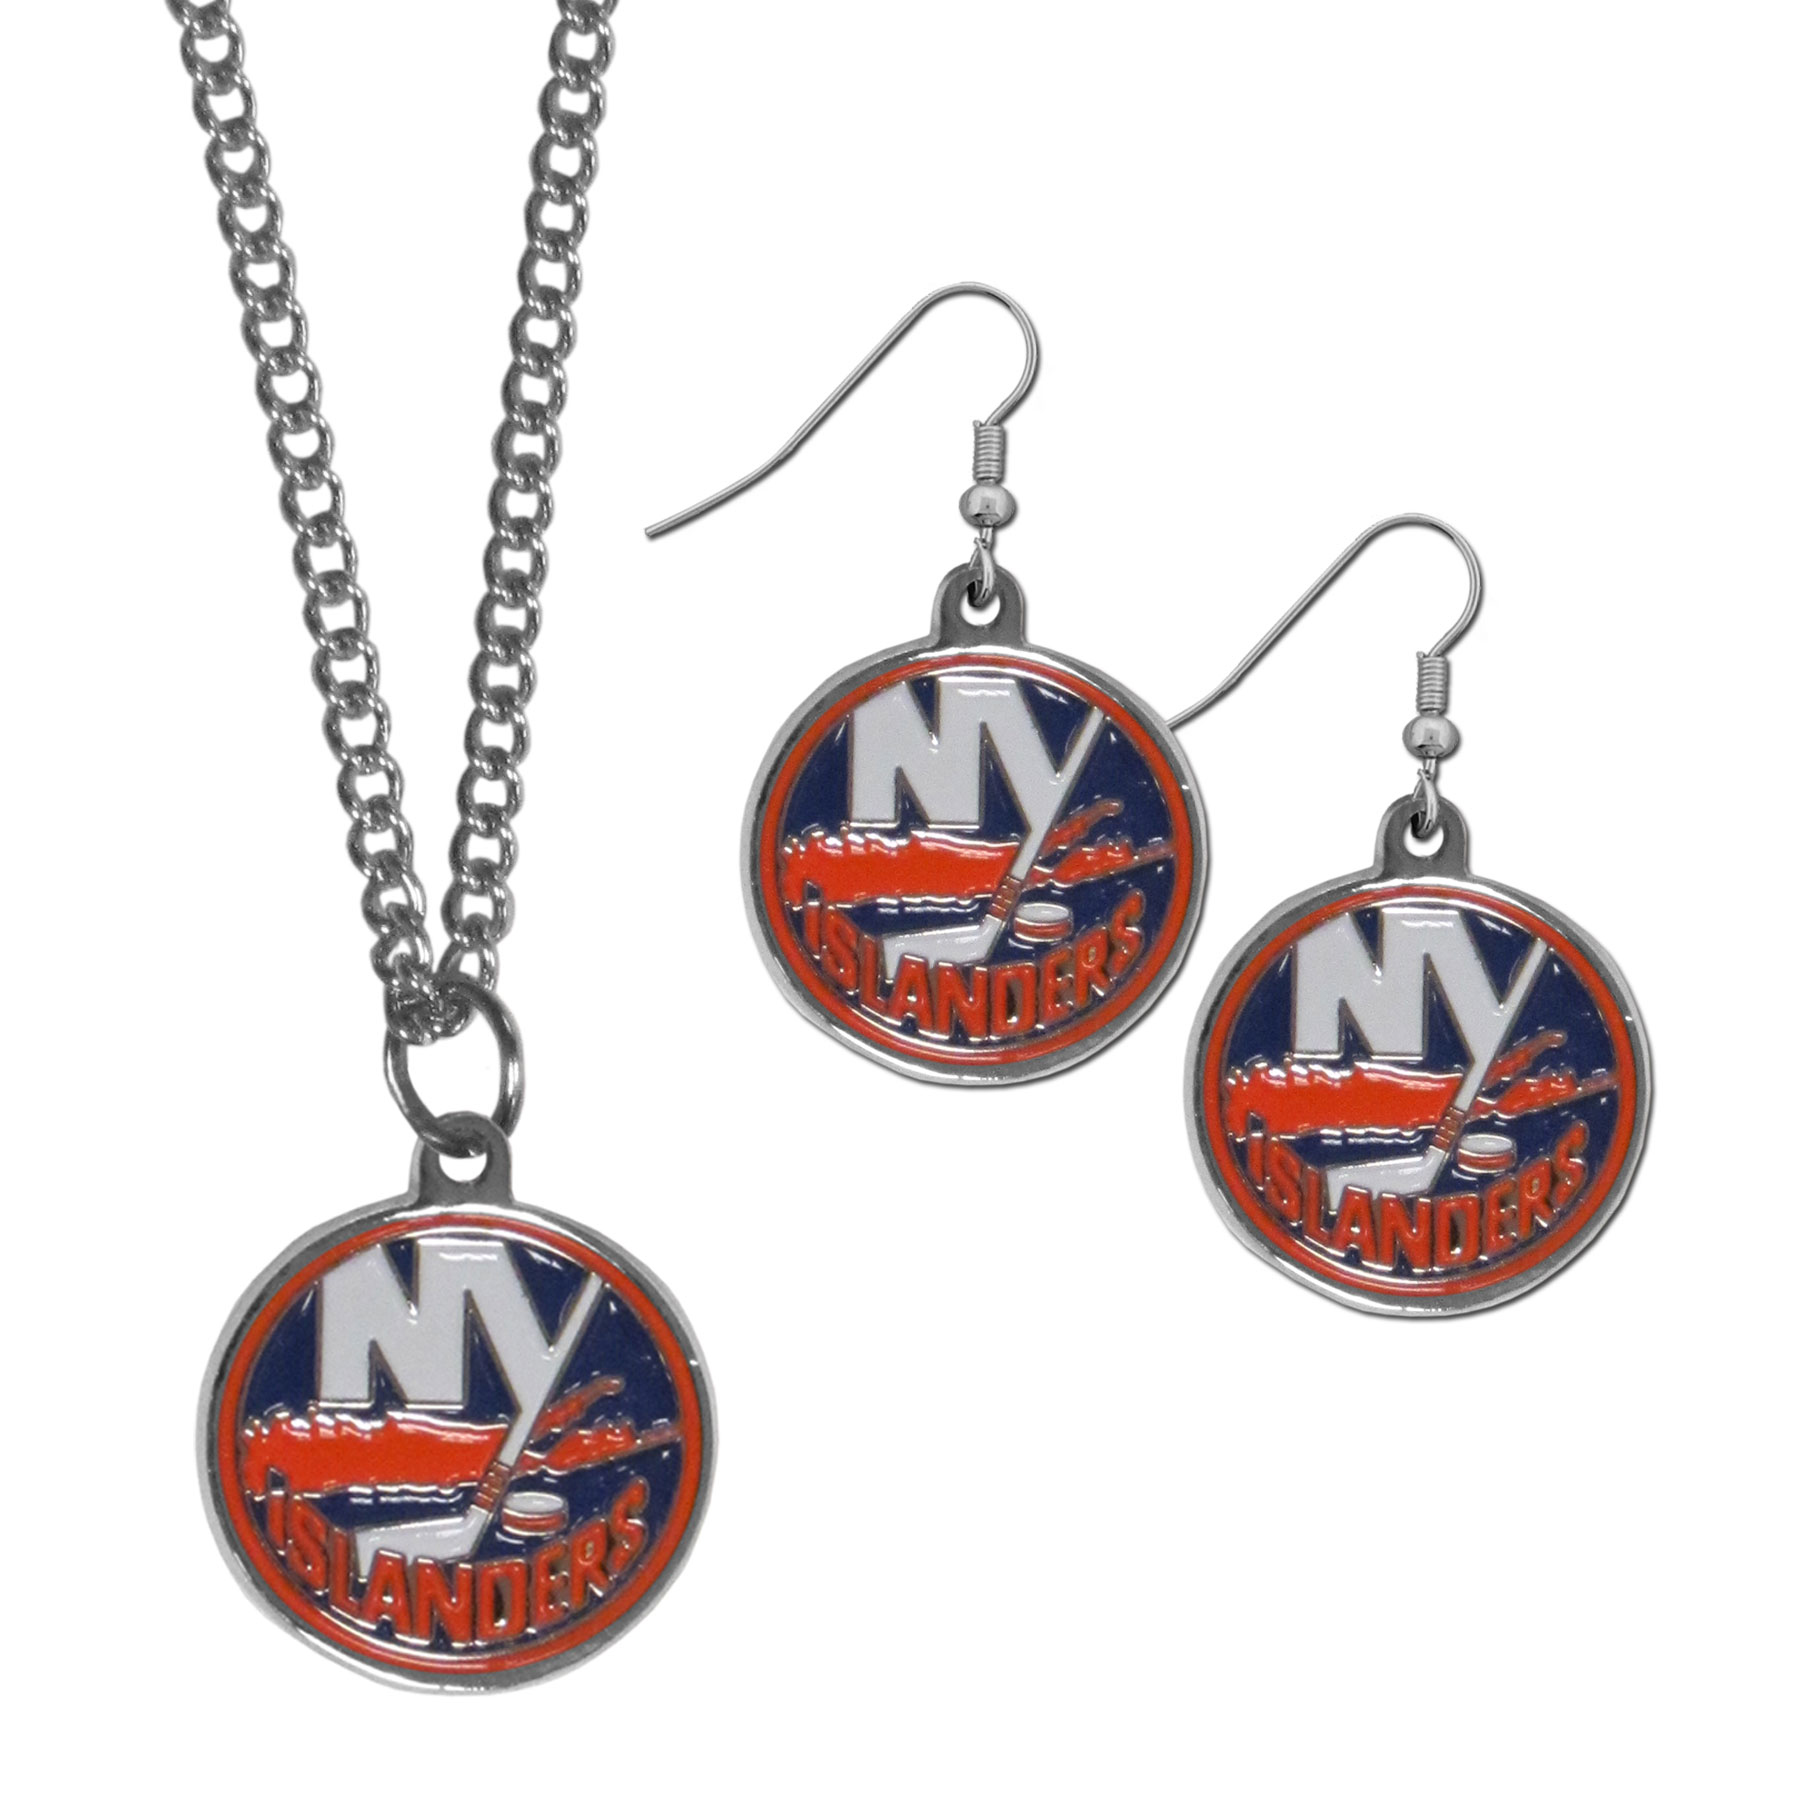 New York Islanders® Dangle Earrings and Chain Necklace Set - This classic jewelry set contains are most popular New York Islanders® dangle earrings and 22 inch chain necklace. The trendy, dangle earrings are lightweight and feature a fully cast metal team charm with enameled team colors. The matching necklace completes this fashion forward combo and is a spirited set that is perfect for game day but nice enough for everyday.